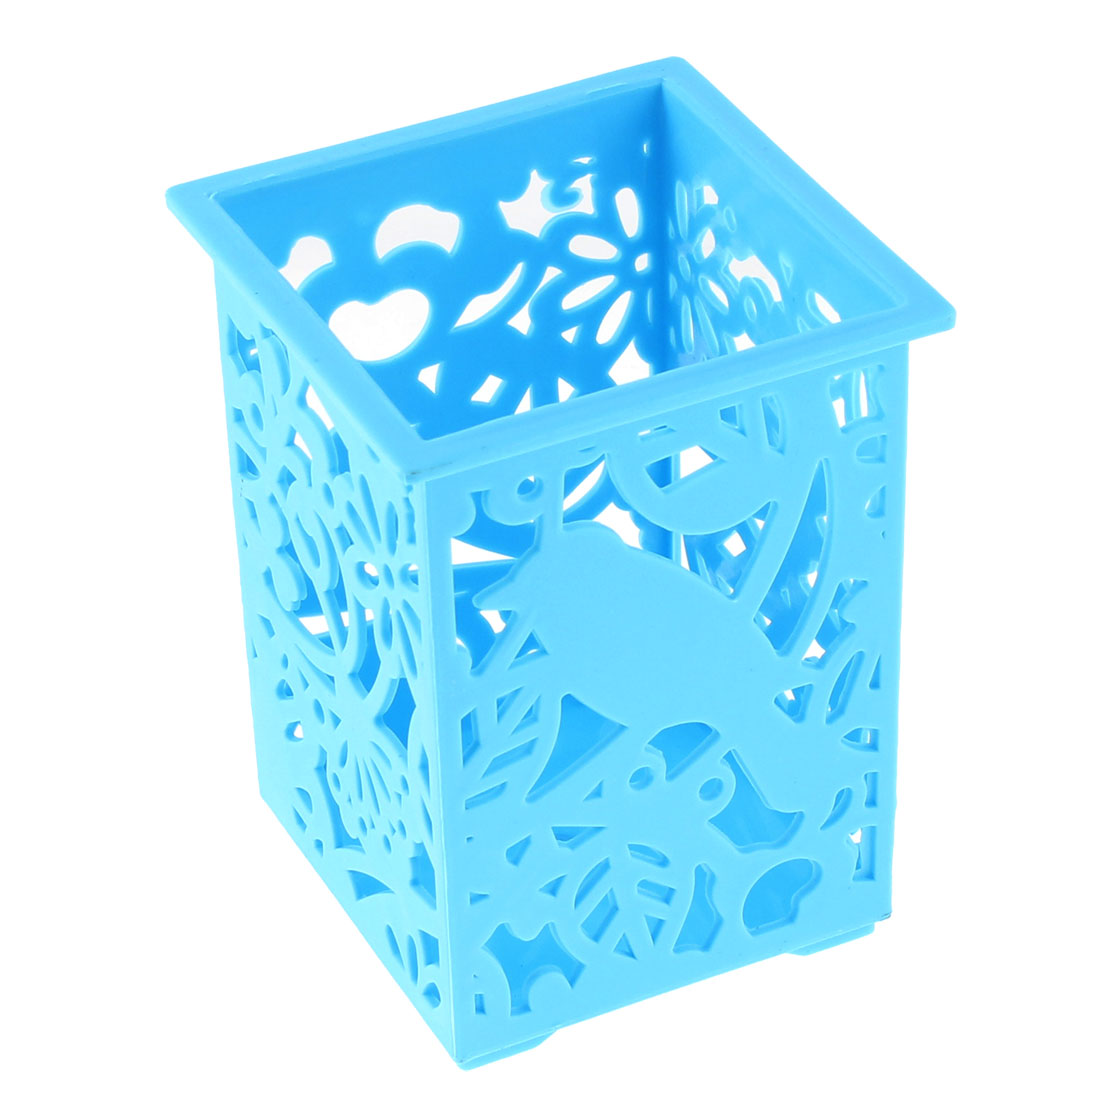 Desk Plastic Hollow Out Flowers Design Pencil Pen Holder Container Blue